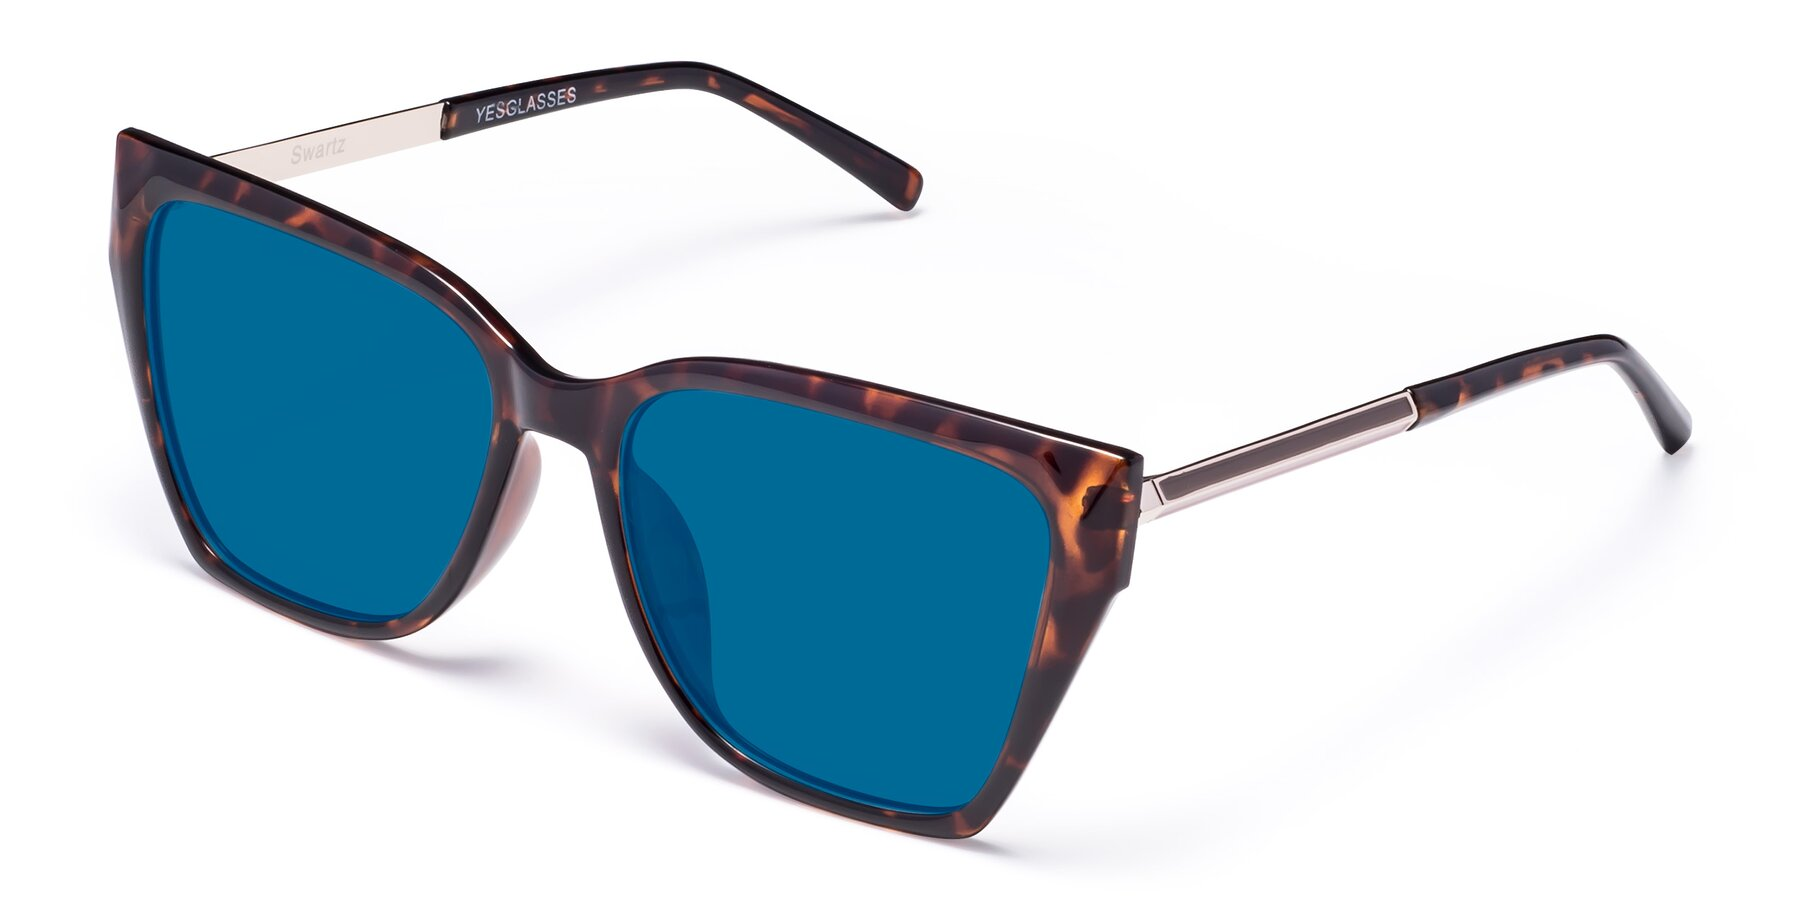 Angle of Swartz in Tortoise with Blue Tinted Lenses